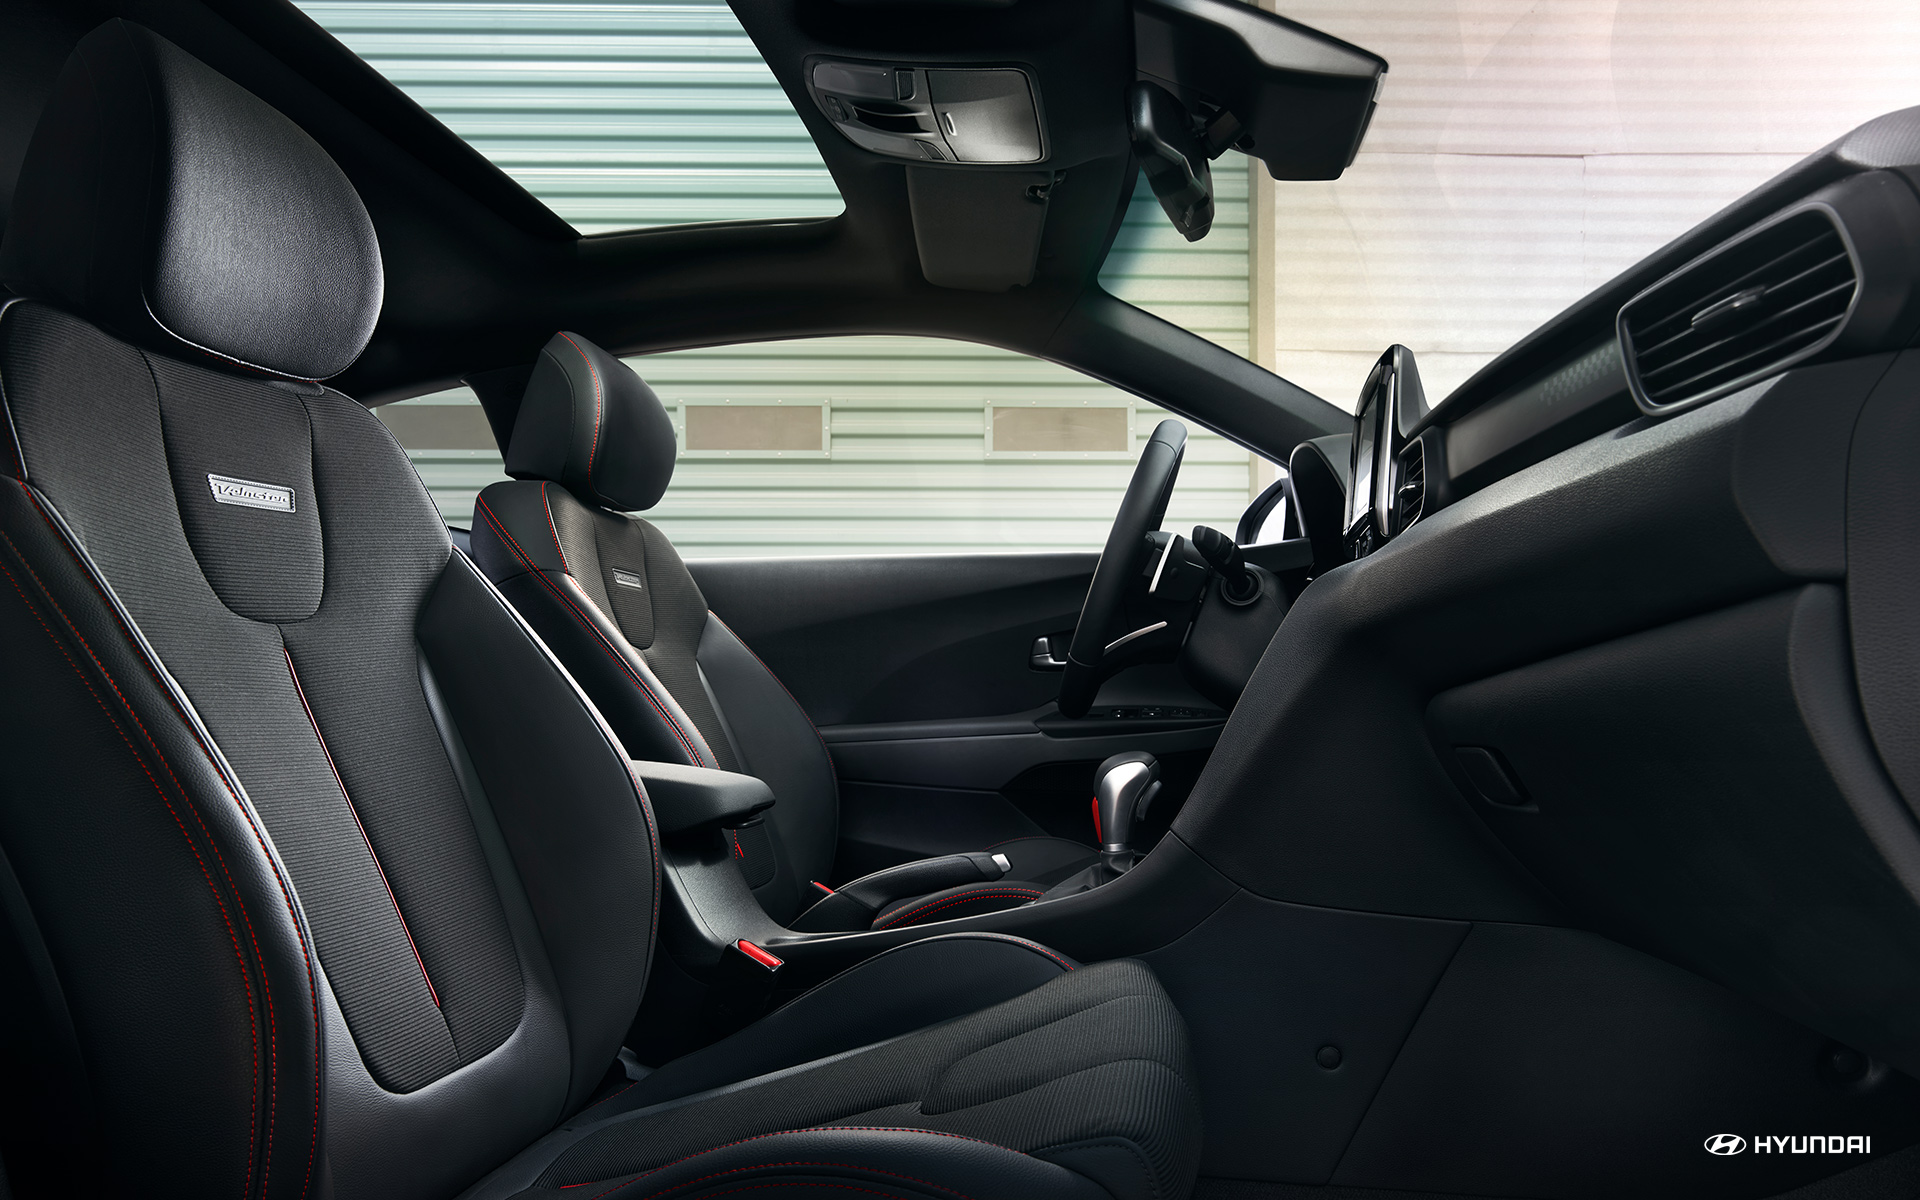 Accommodating Cabin of the 2019 Veloster